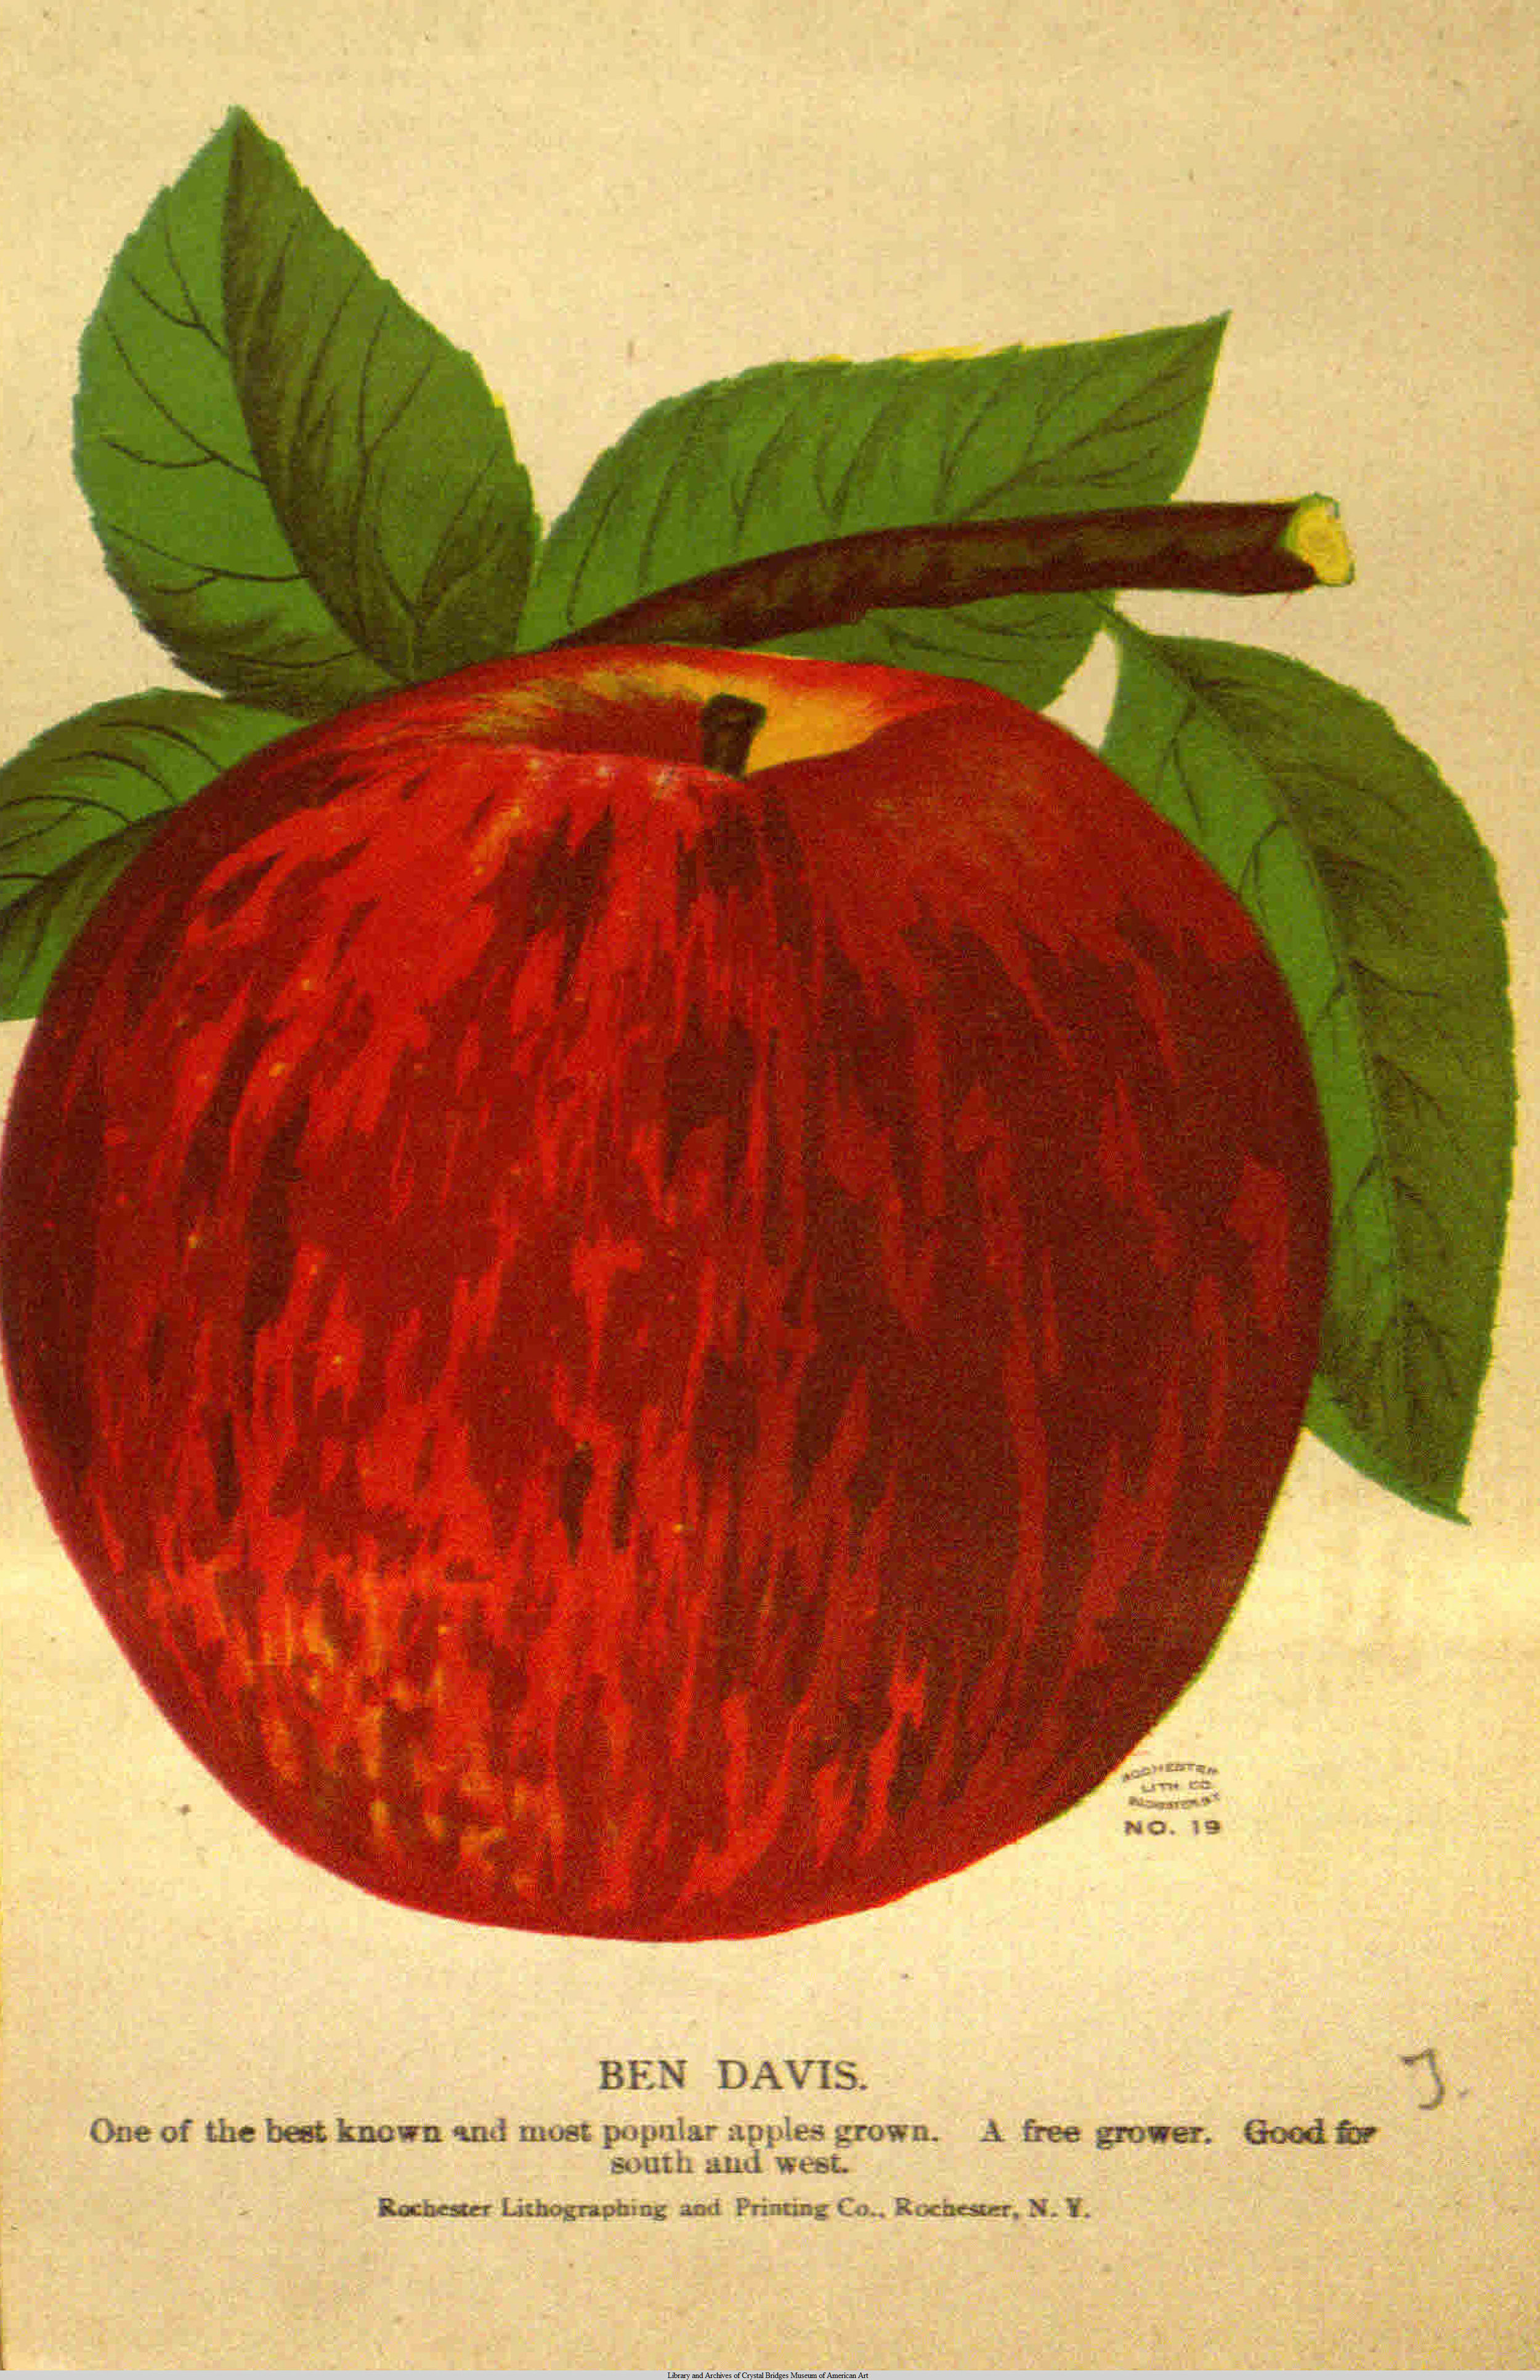 In 1922, the Ben Davis variety was the most widely planted apple in Boulder County. Photo courtesy of the Library and Archives of Crystal Bridges Museum of American Art.